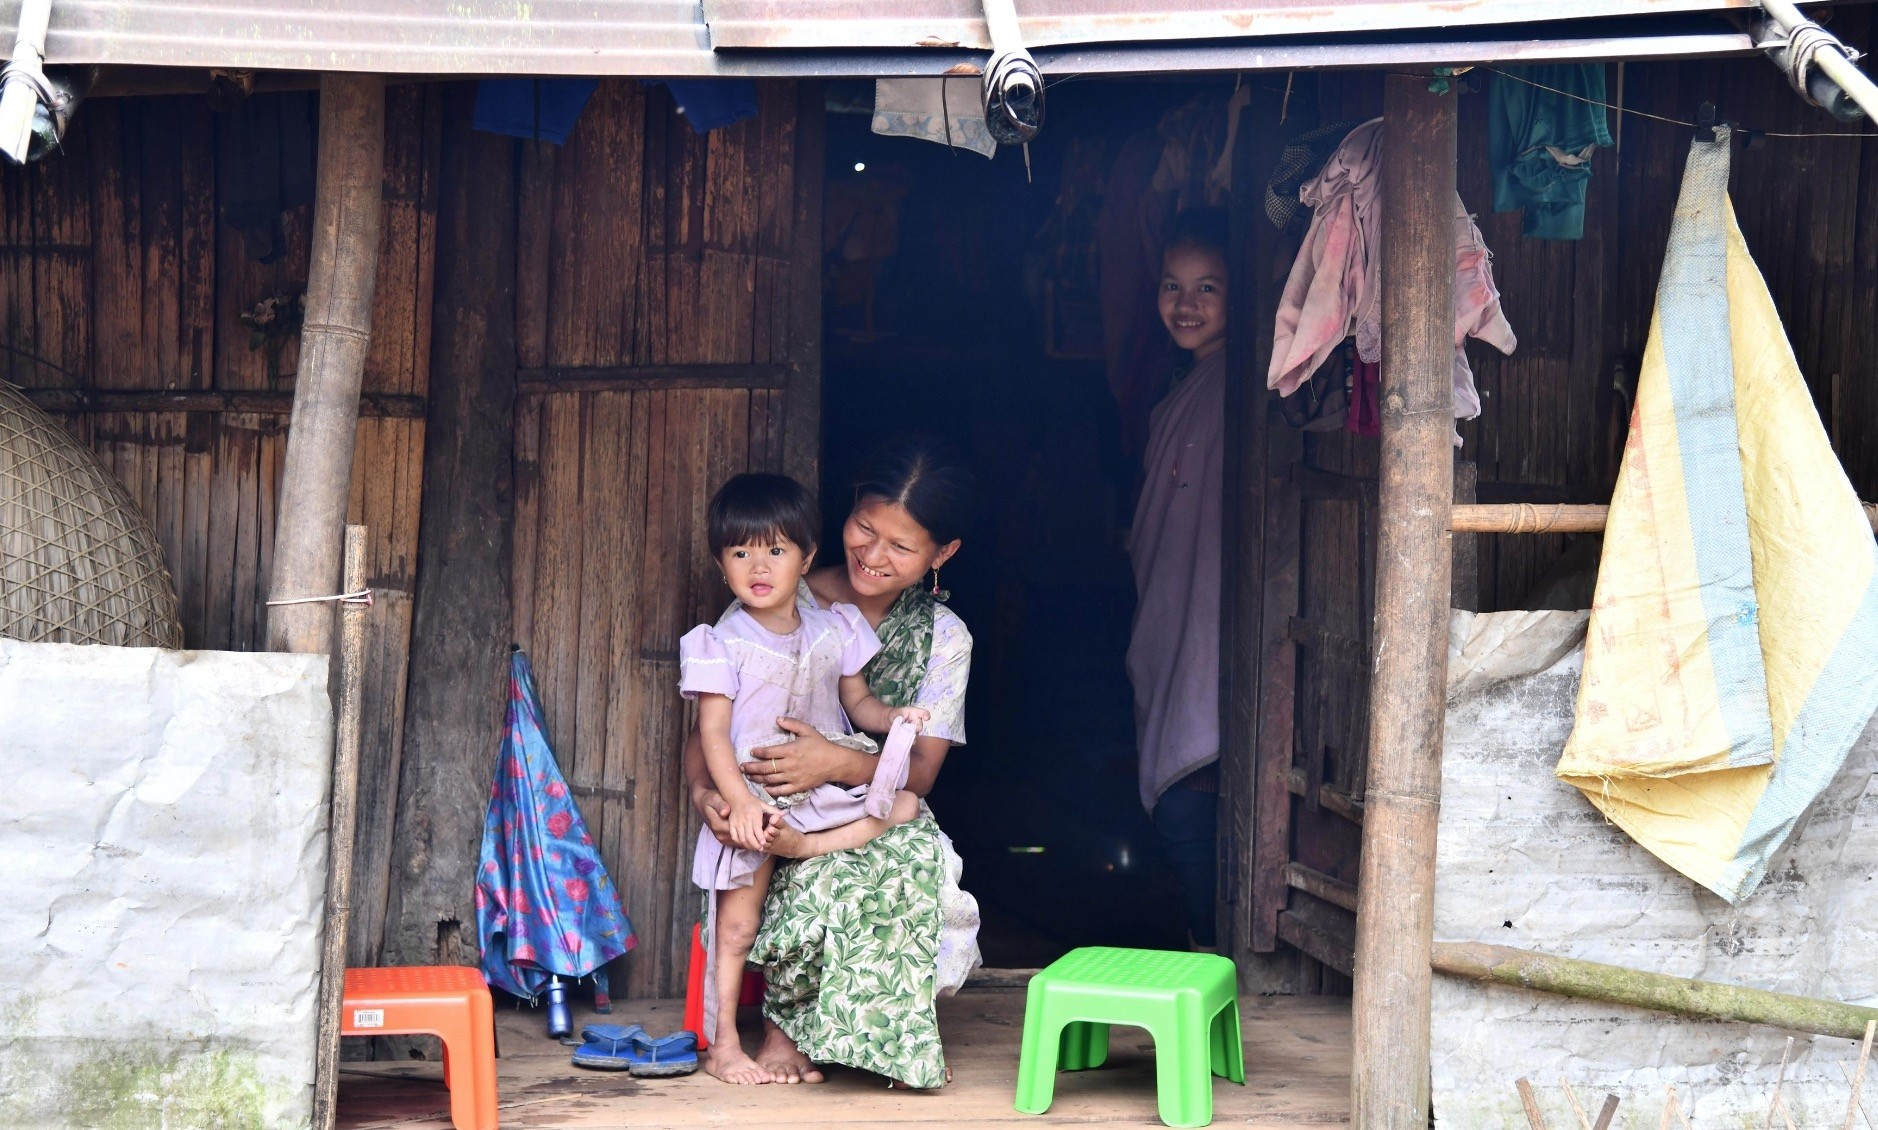 Pyndaplin Shabong, 39, with her daughter at her house in Kongthong village.